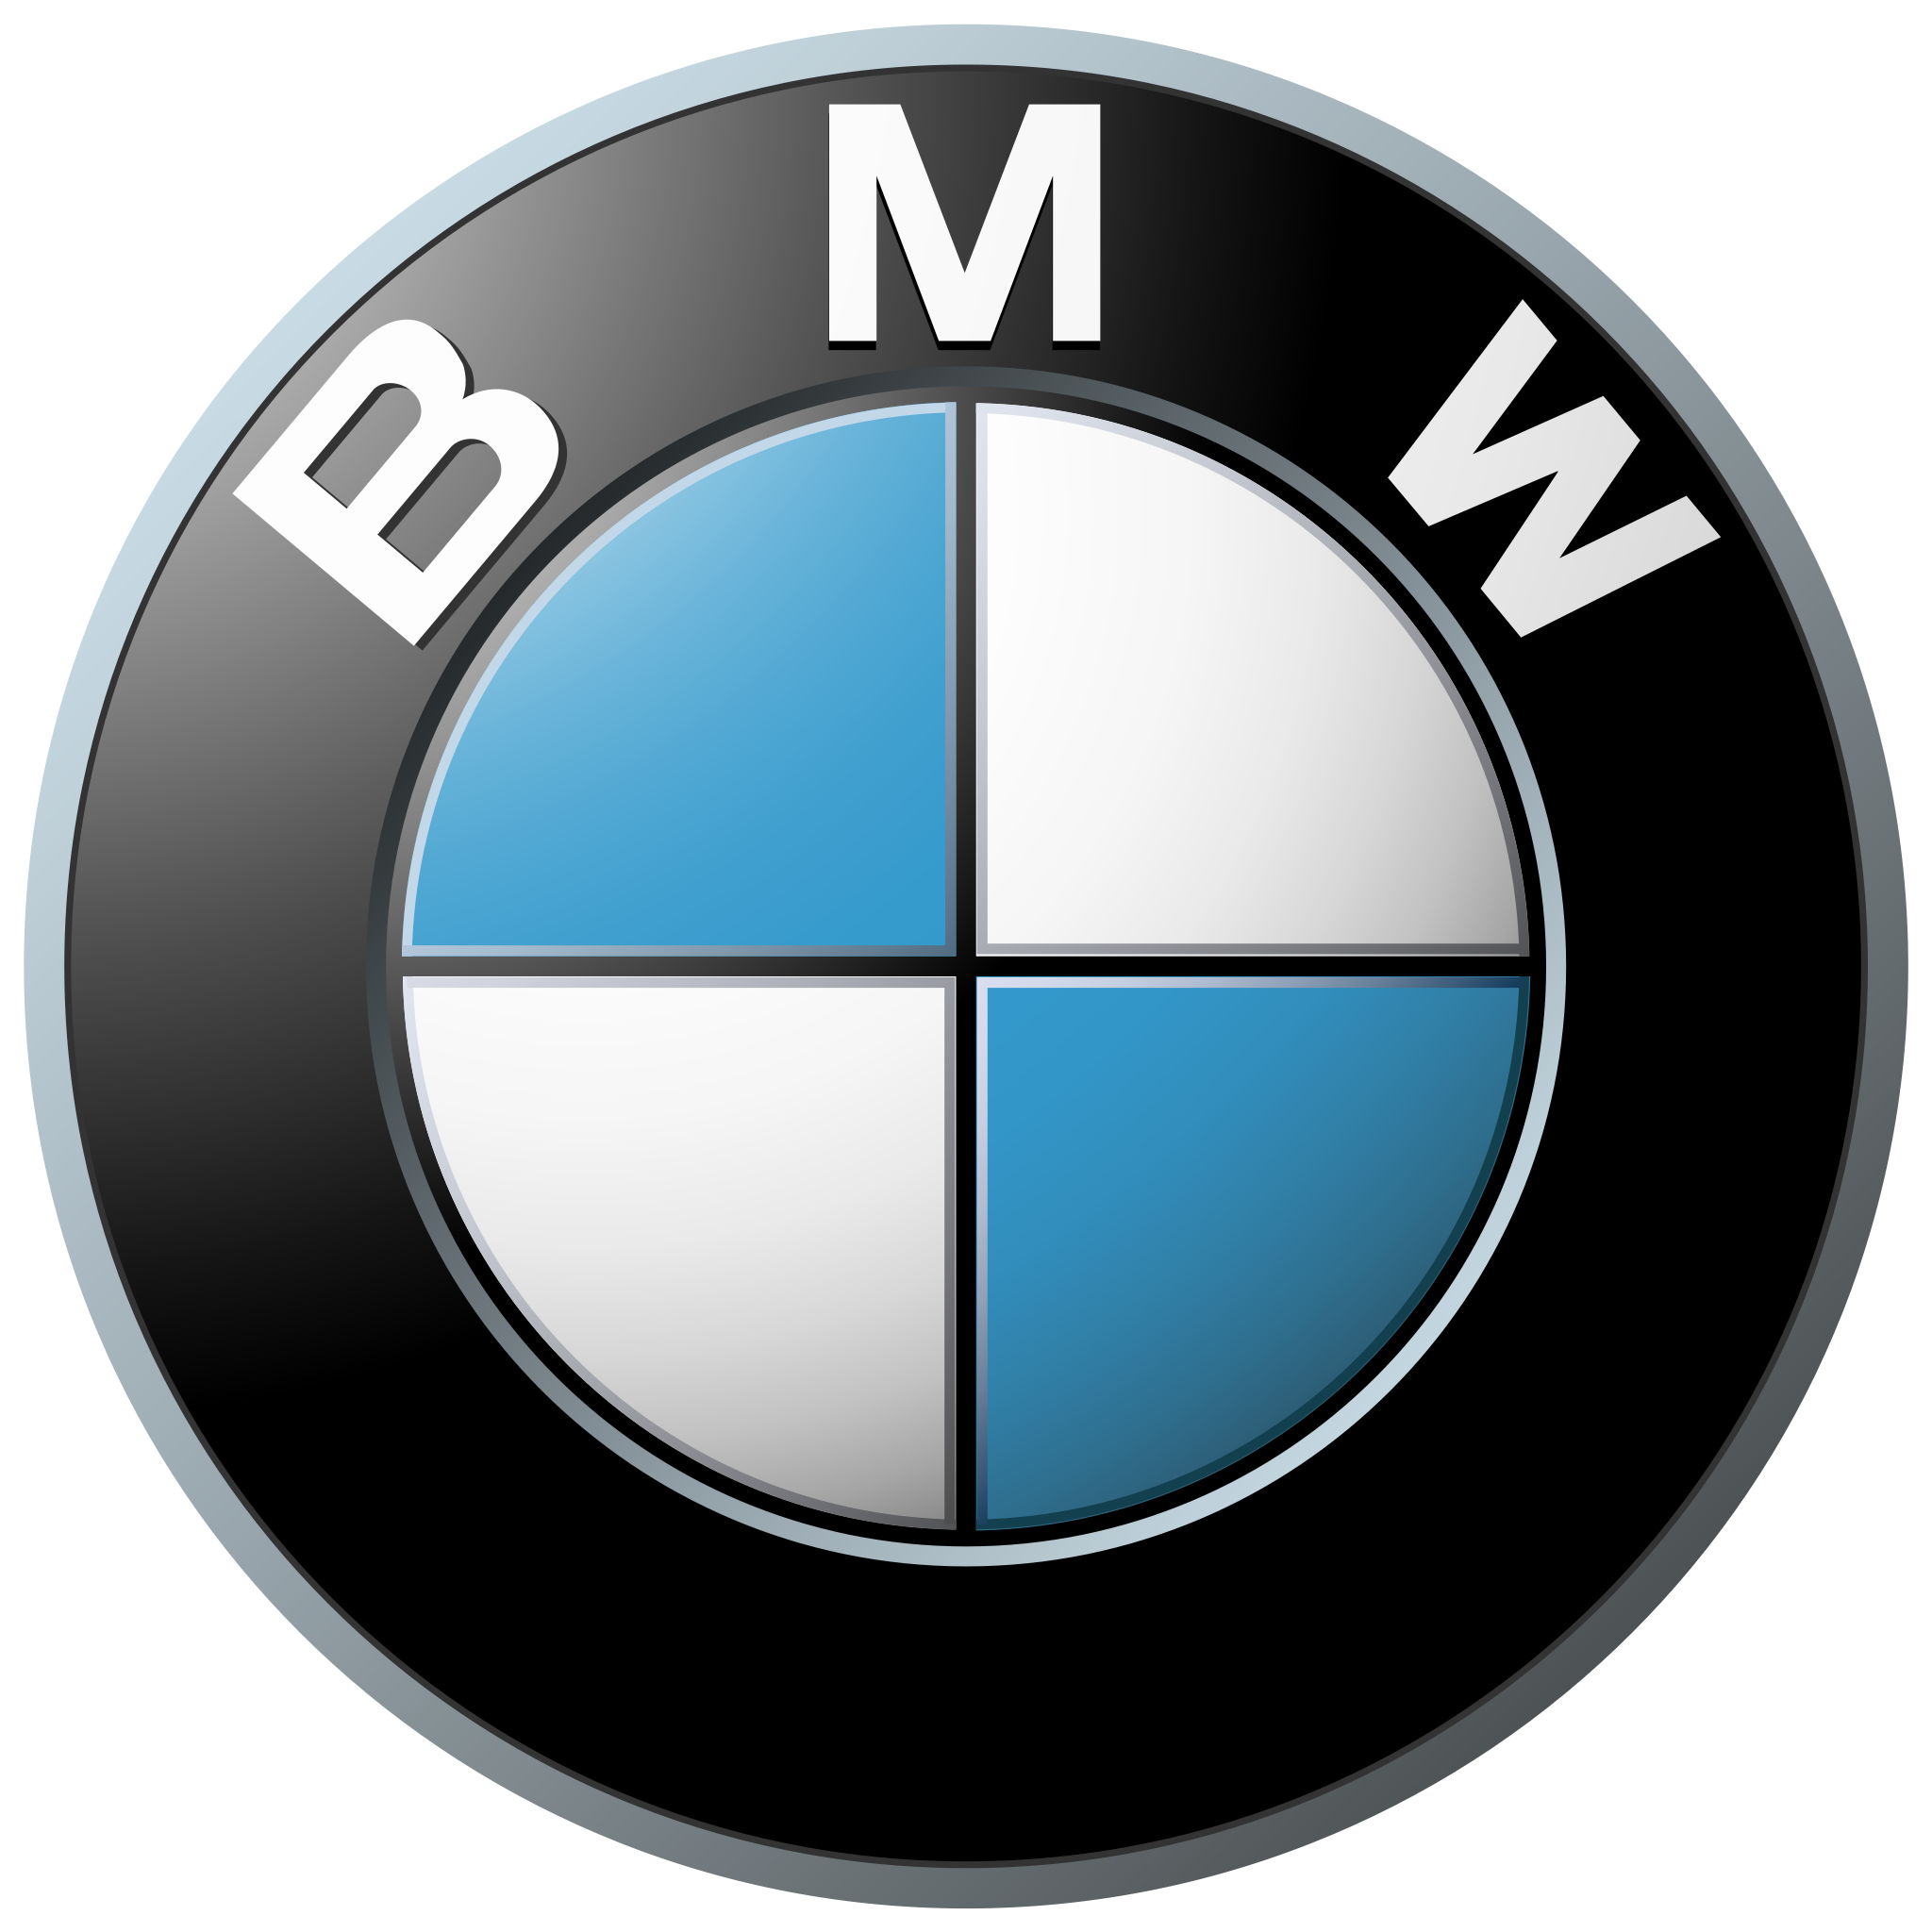 Bmw logo hd meaning. Car company logos png picture transparent download